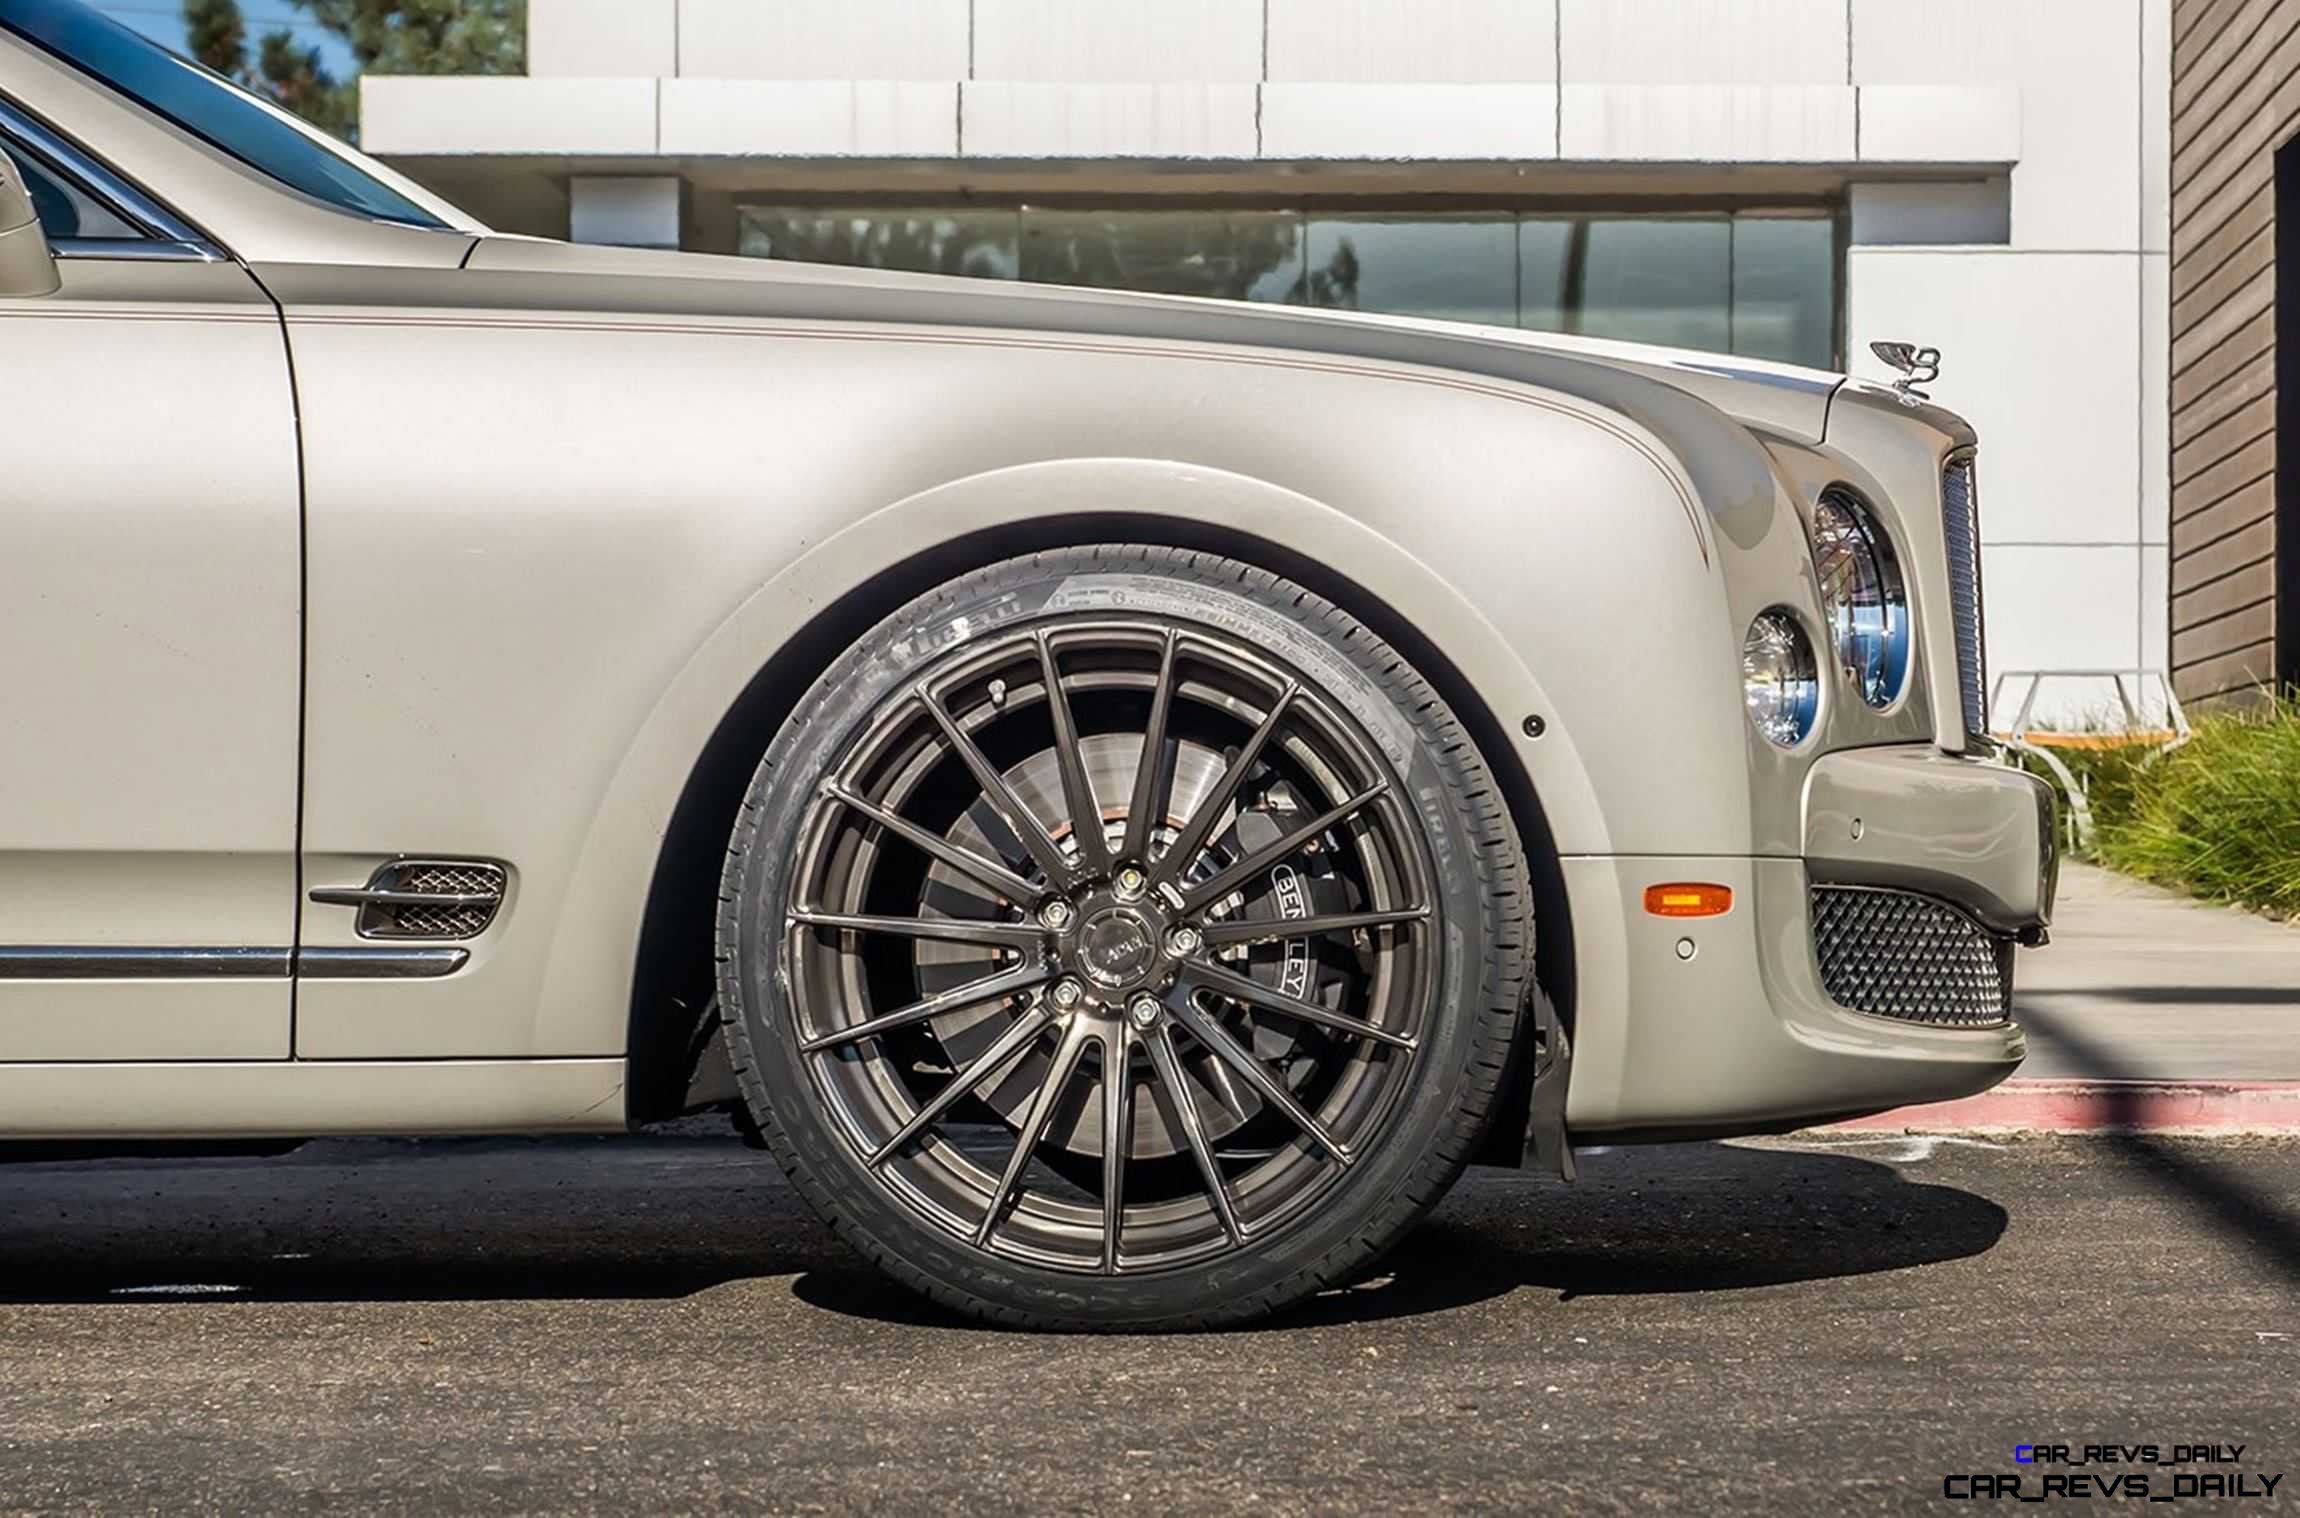 Bentley Mulsanne ADV15 MV2 SL Series_21793913172_o